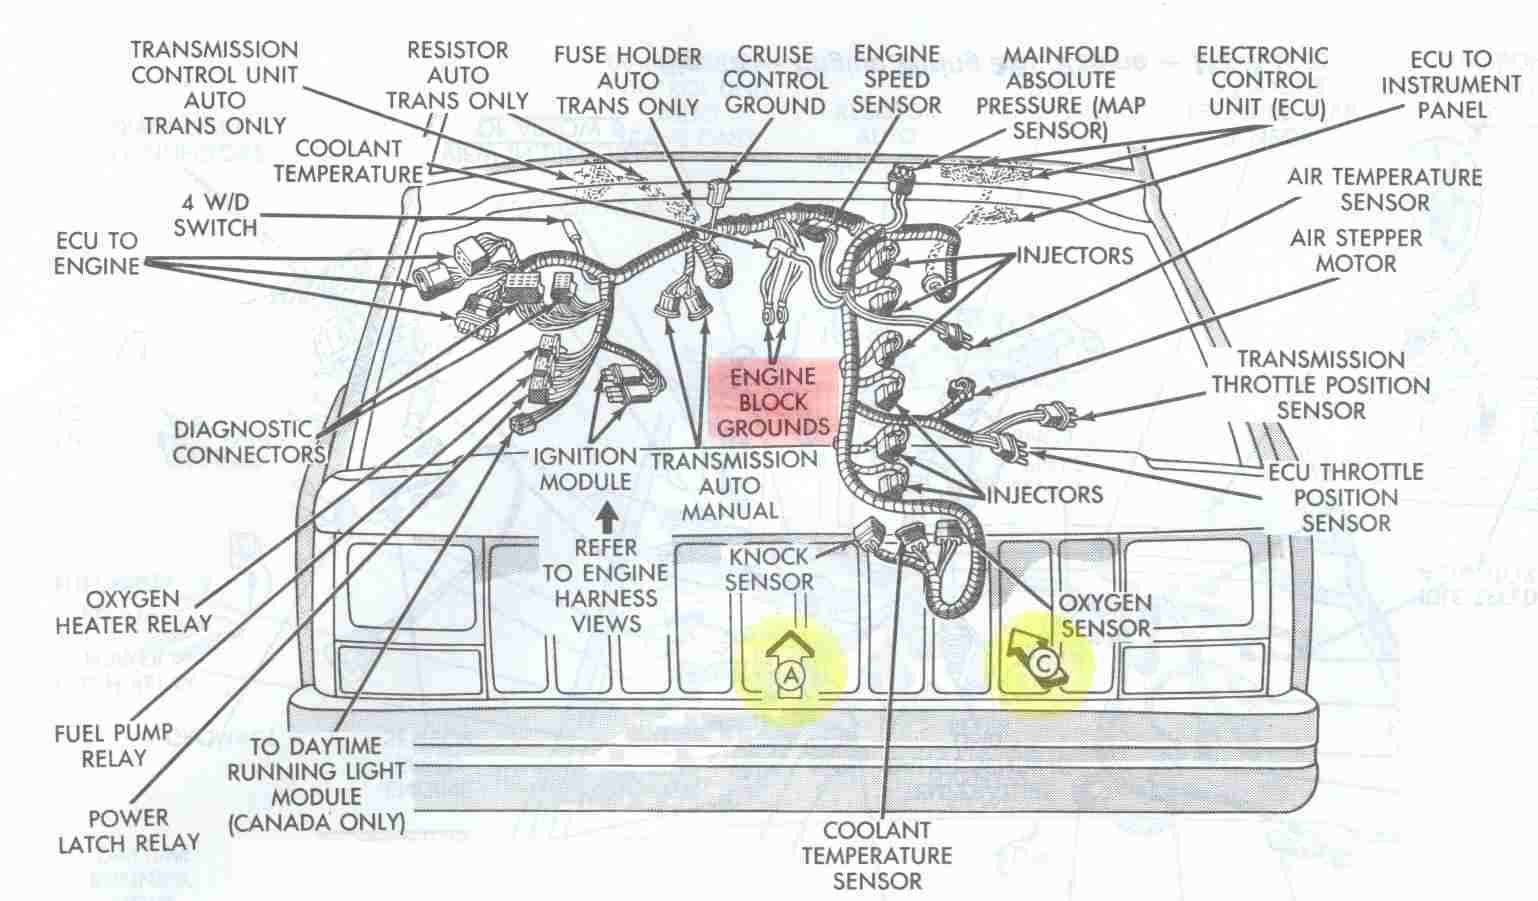 Engine Bay Schematic Showing Major Electrical Ground Points For 40l Cherokee Factory Trailer Harness Wire Colors Under Hood Wiring Jeep Engines